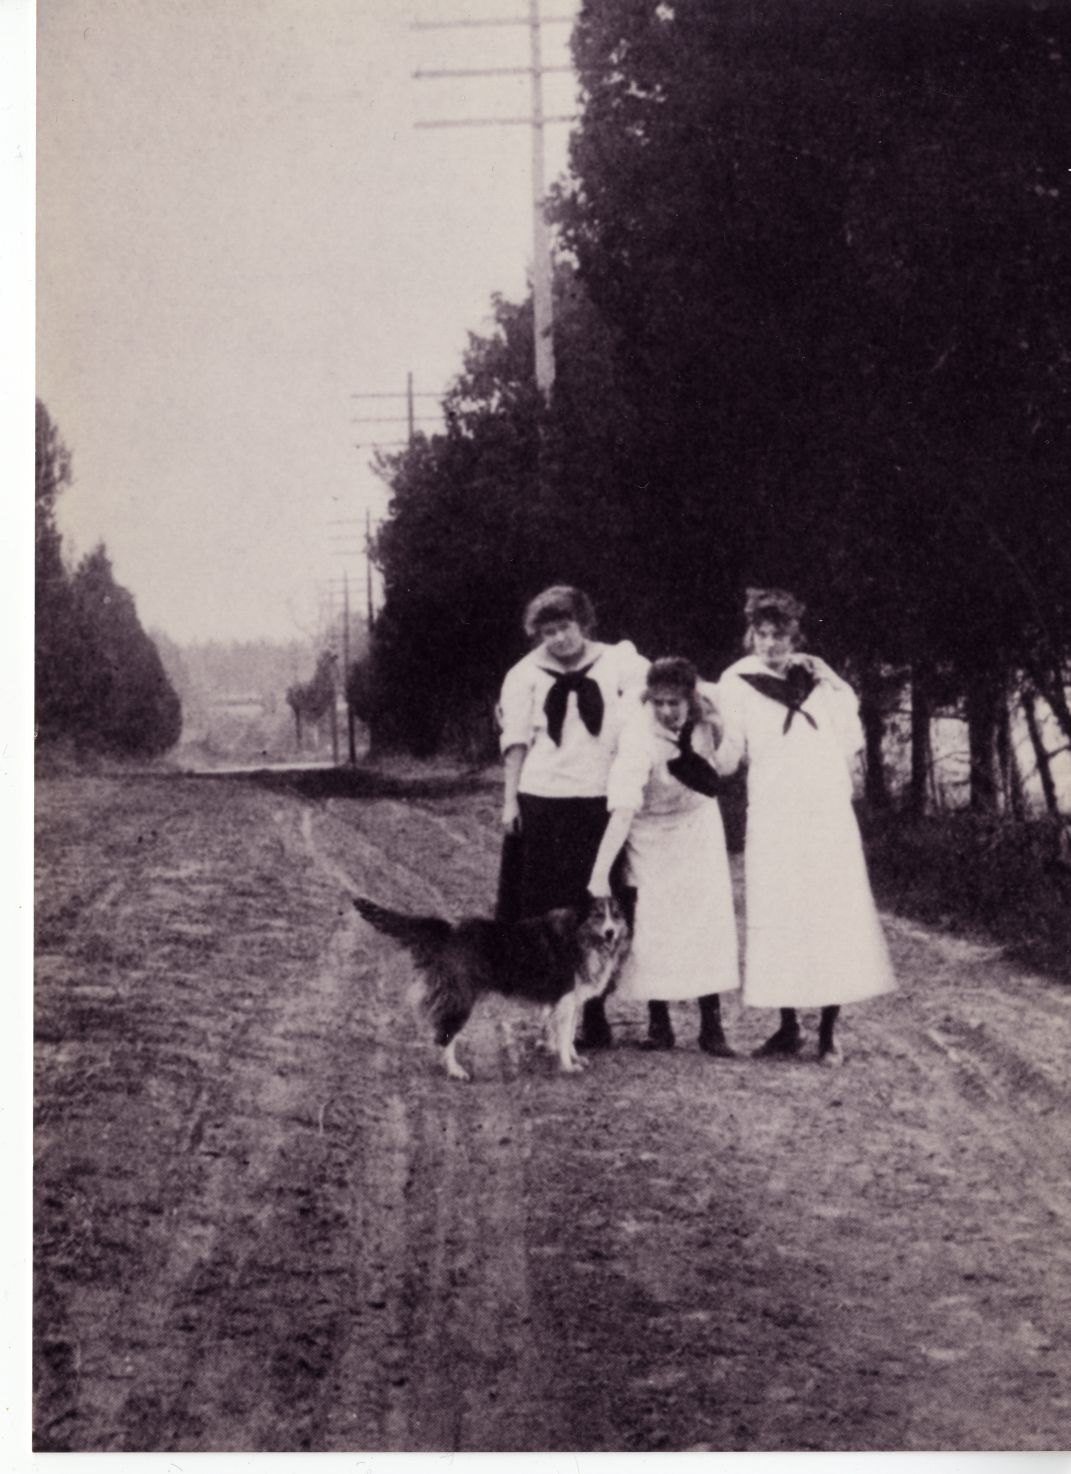 Early 1912 image of Fido with his student friends welcoming all to the State Normal and Industrial School for Women at Fredericksburg (UMW